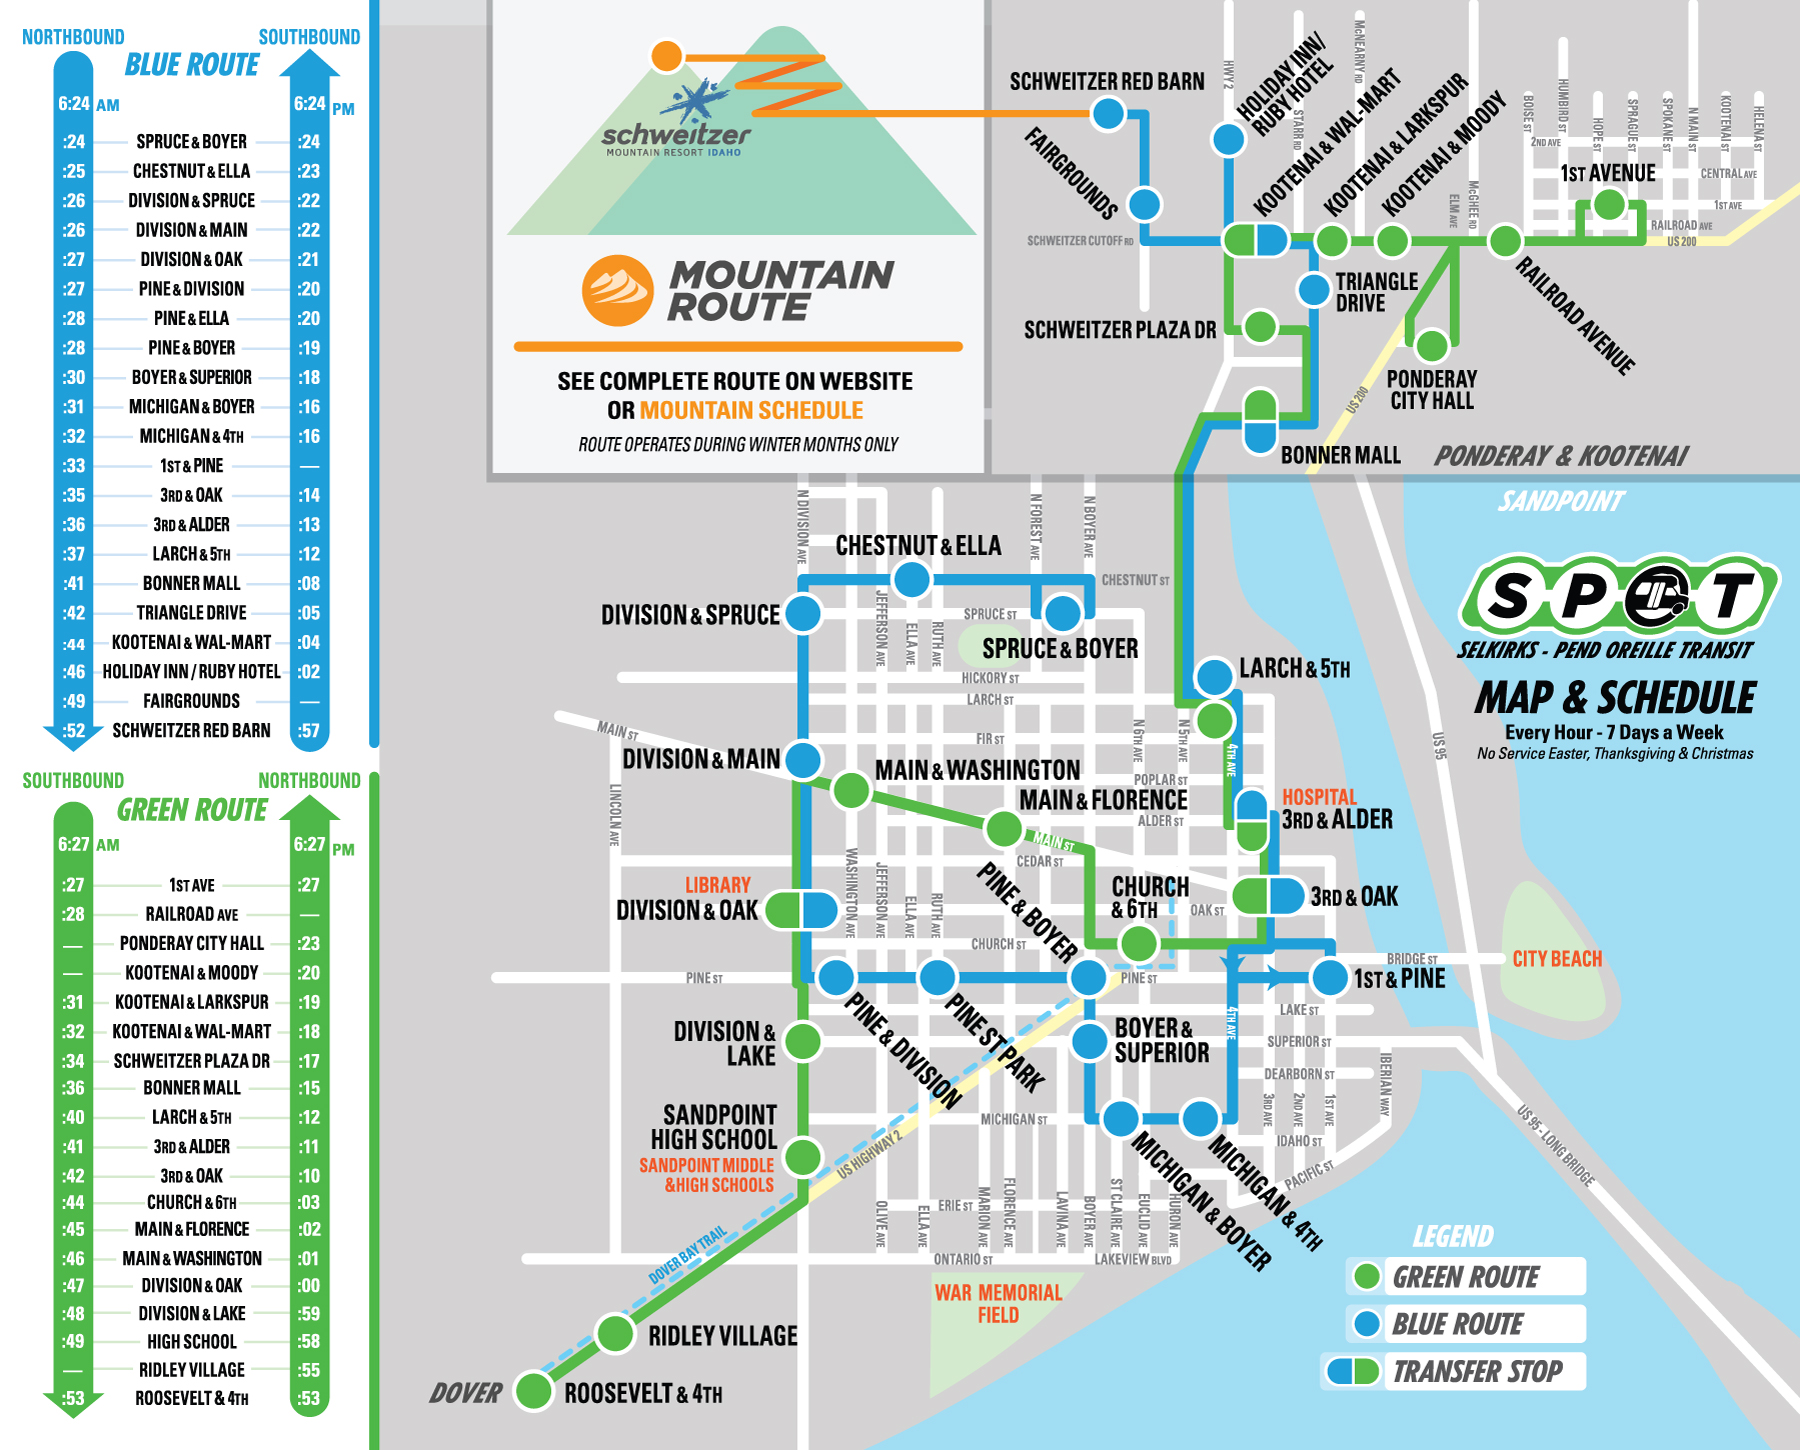 Combined Sandpoint and Ponderay/Kootenai Route Maps